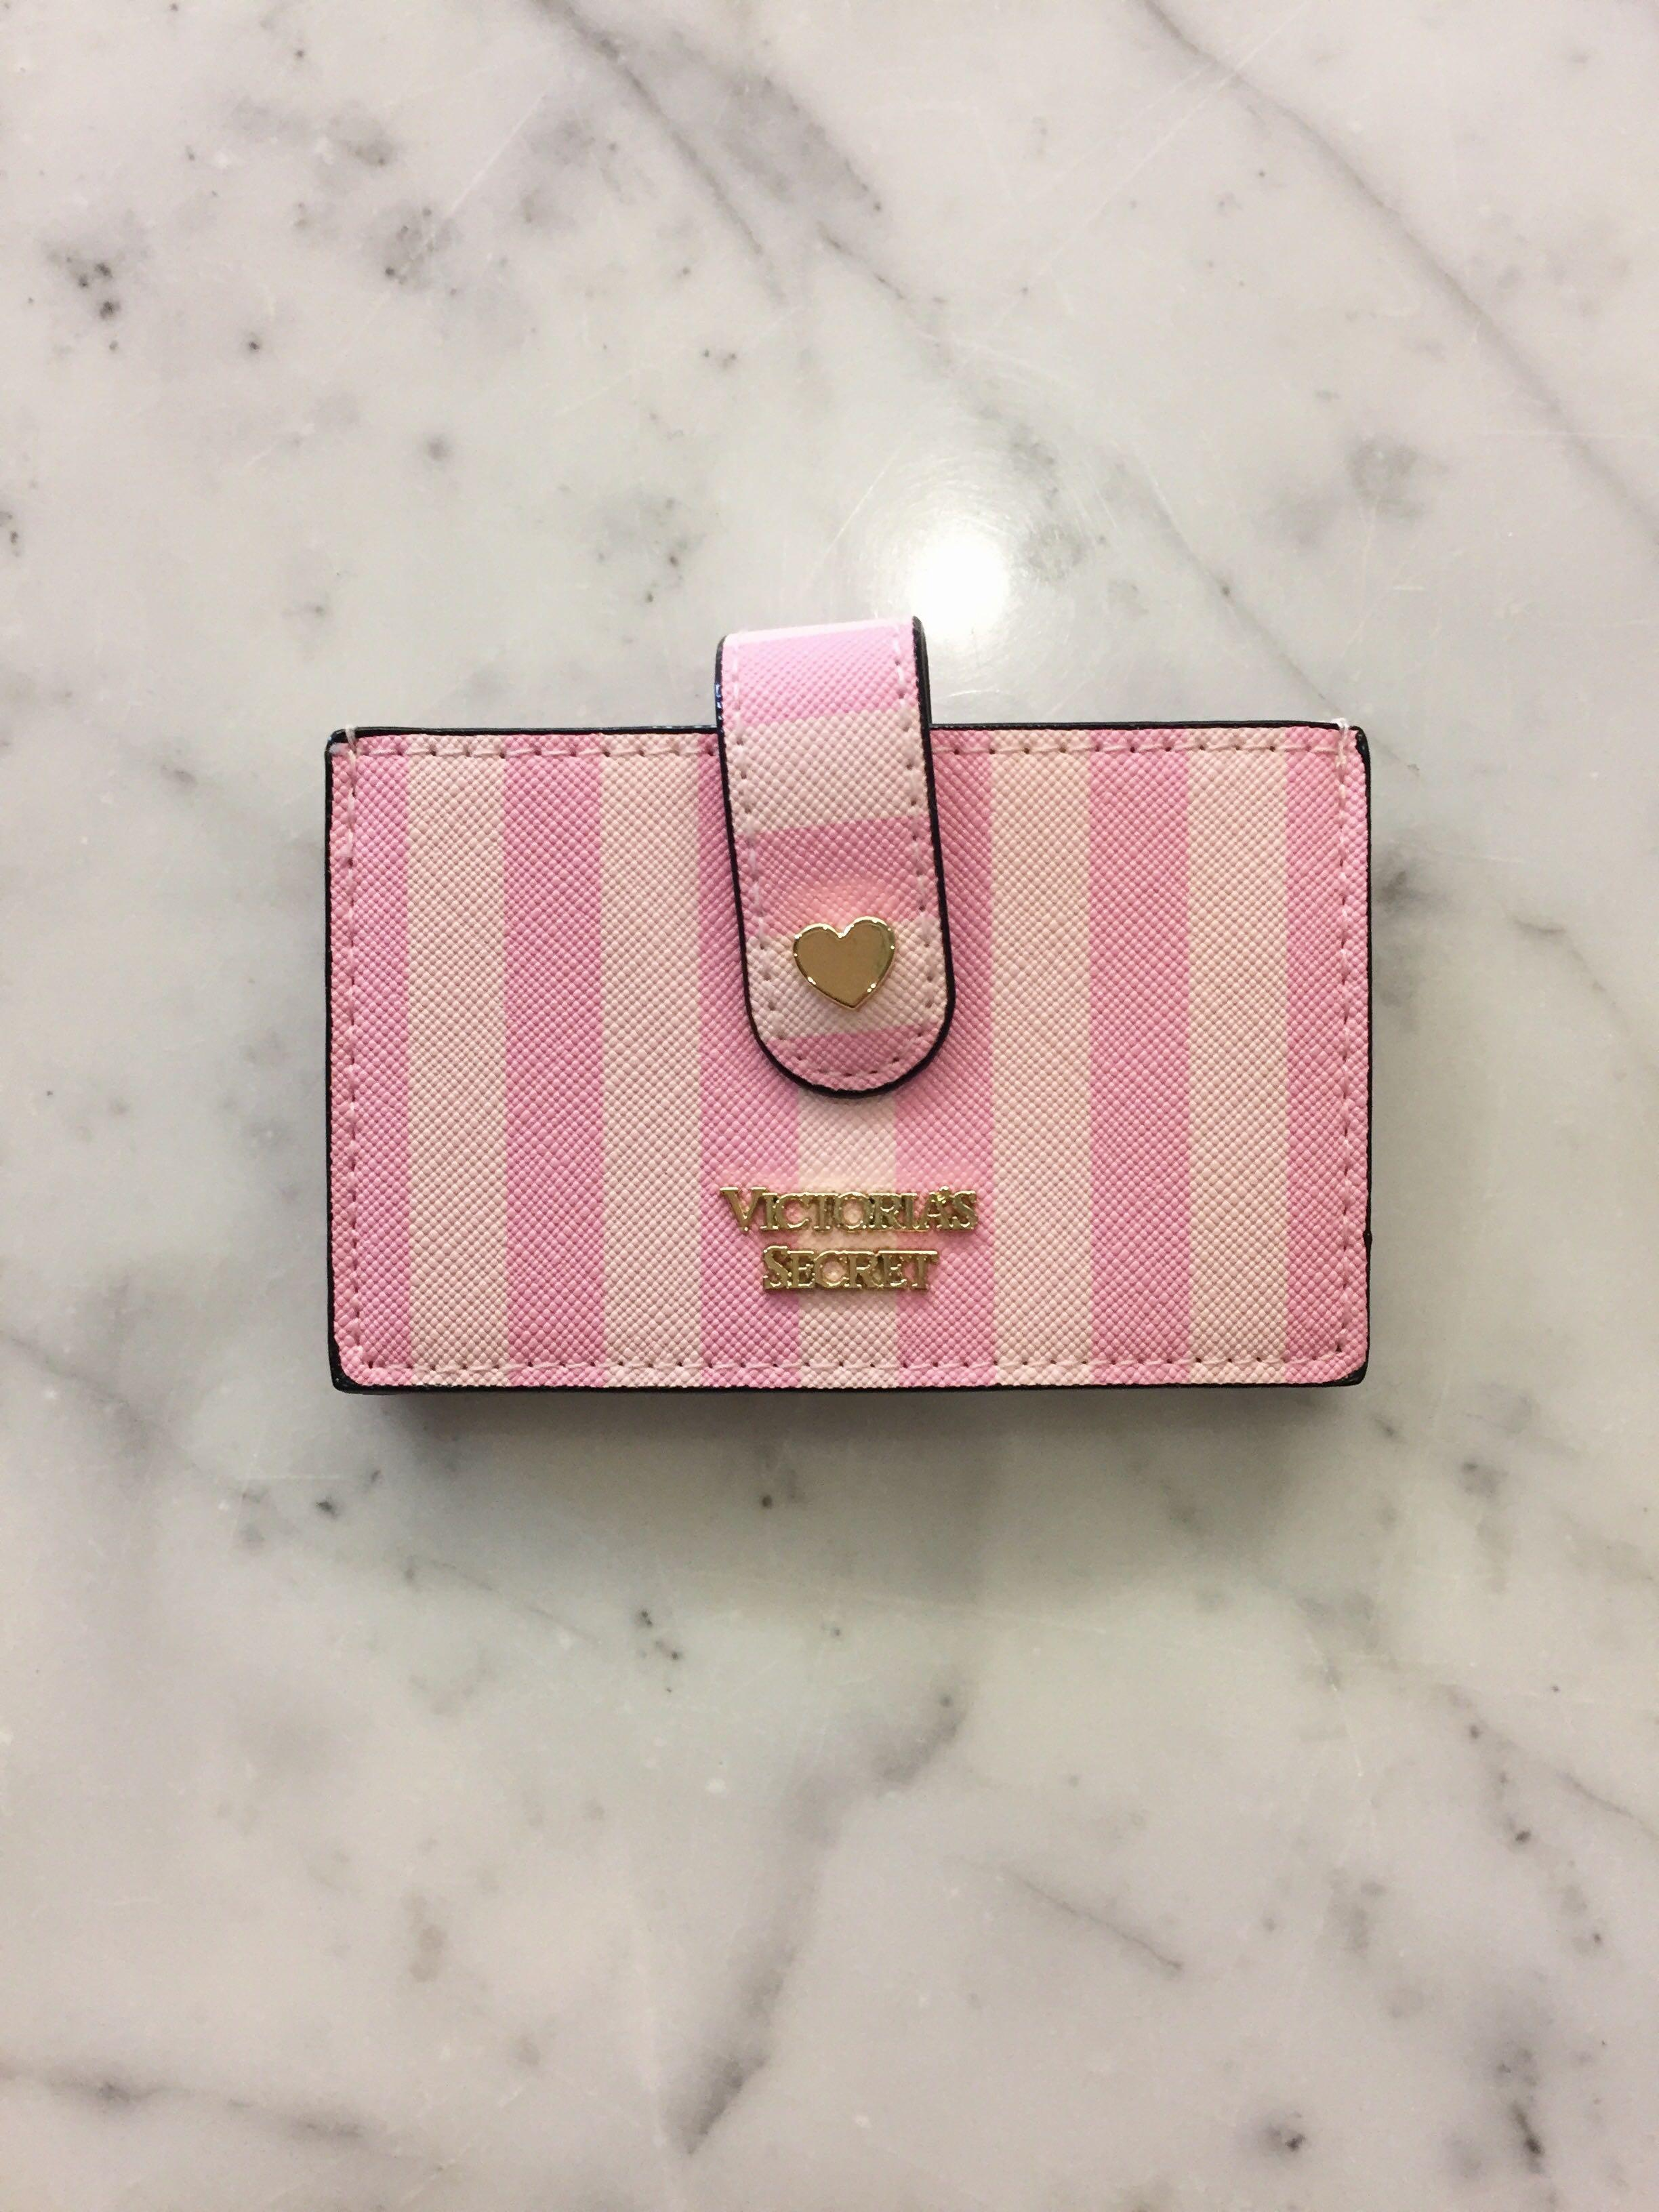 BNWT VICTORIA'S SECRET PINK STRIPED ACCORDION CARD CASE